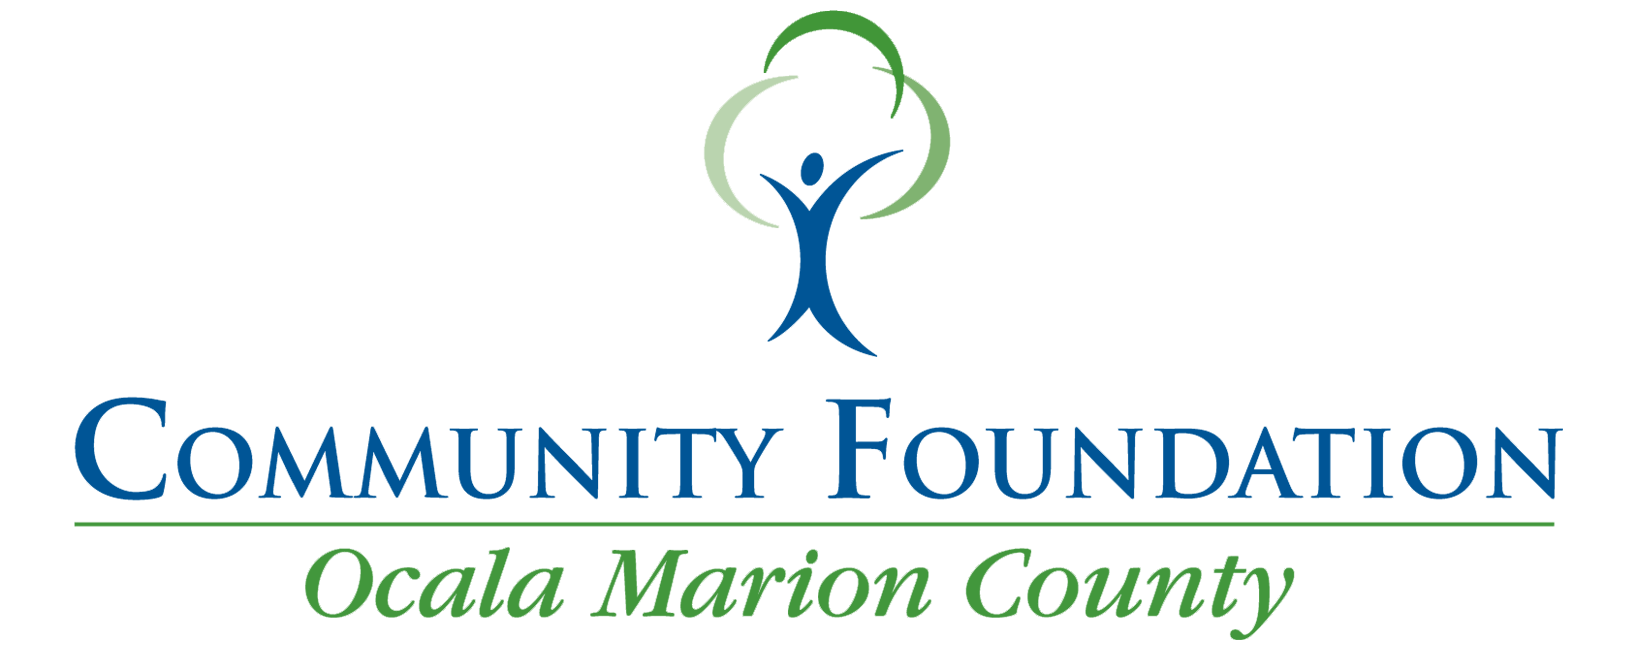 Logo for Community Foundation of Ocala.